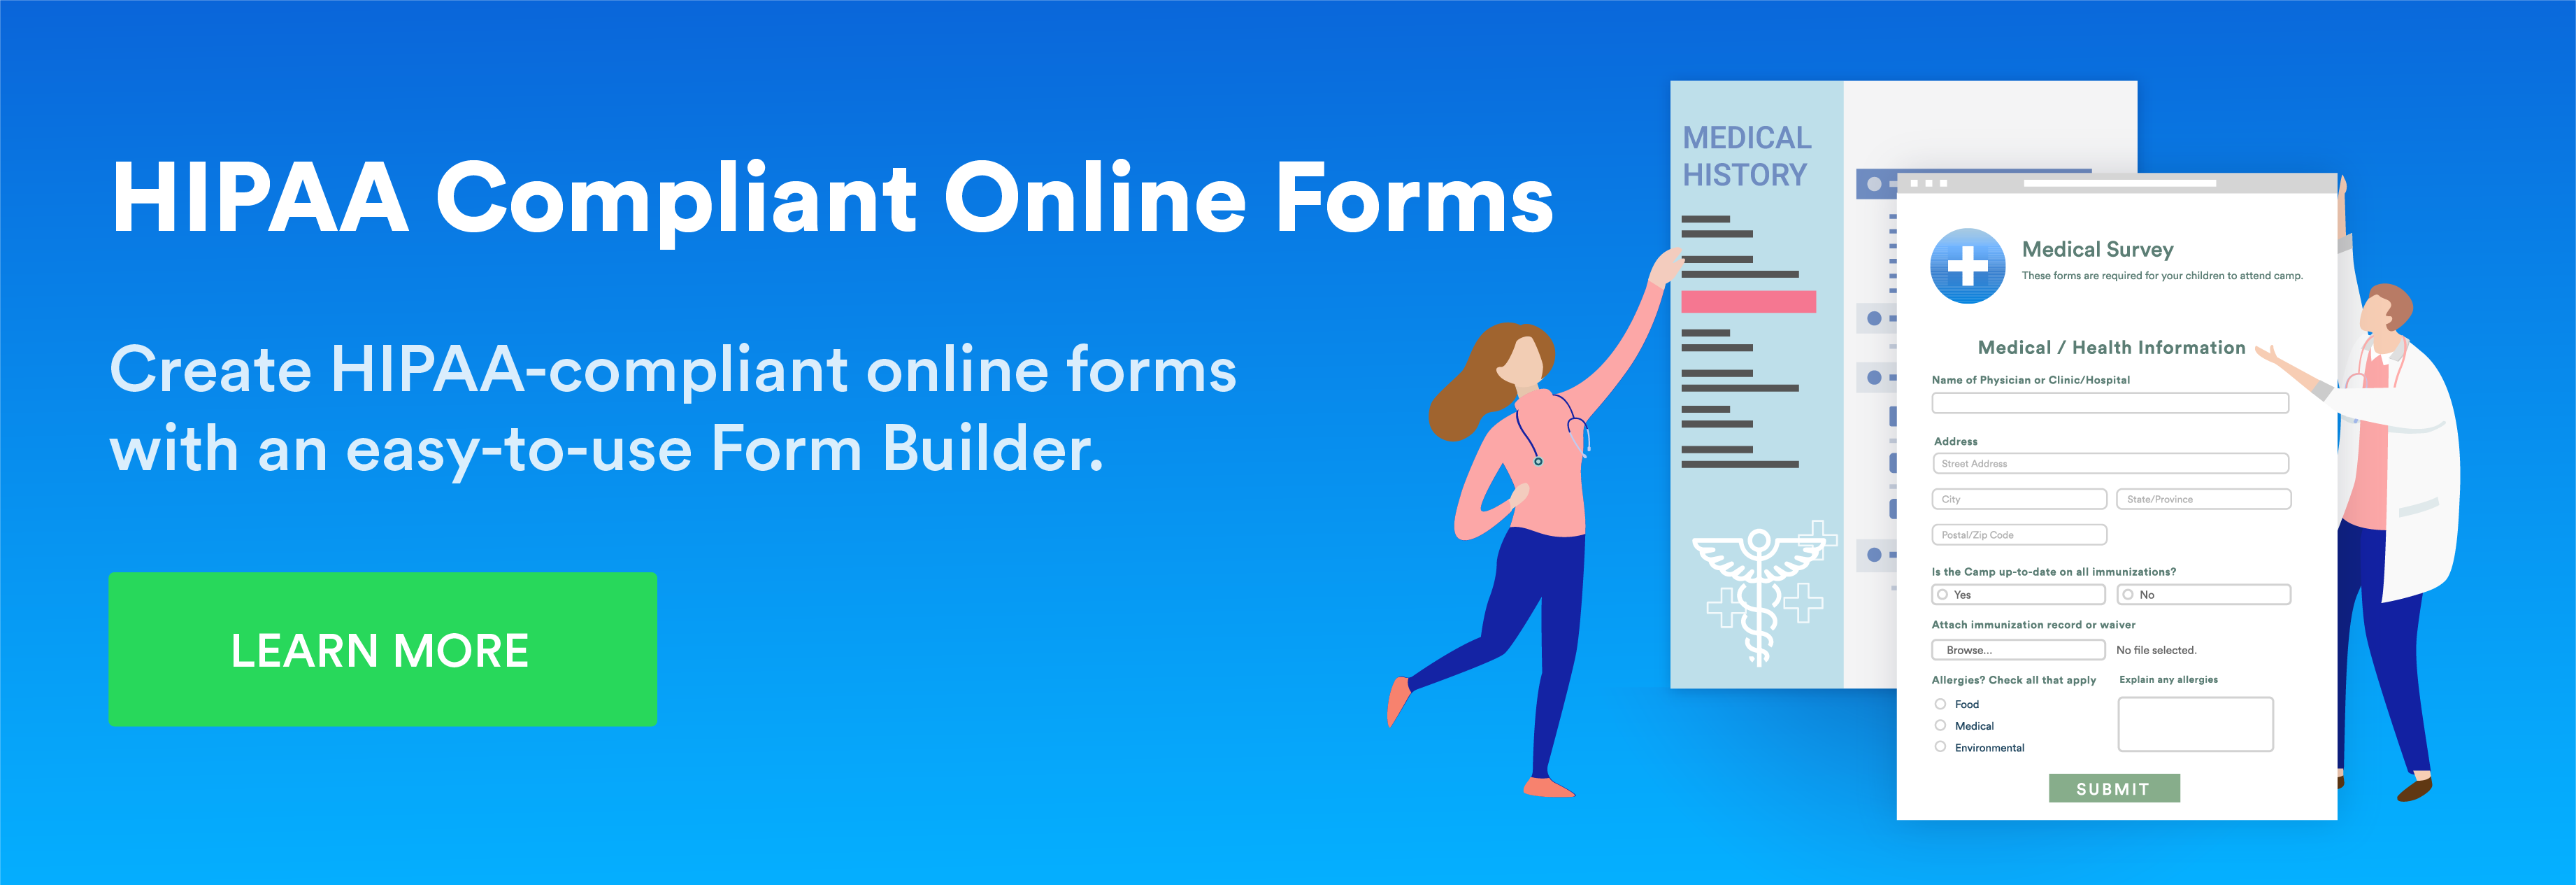 Create HIPAA-compliant online forms with an easy-to-use Form Builder.